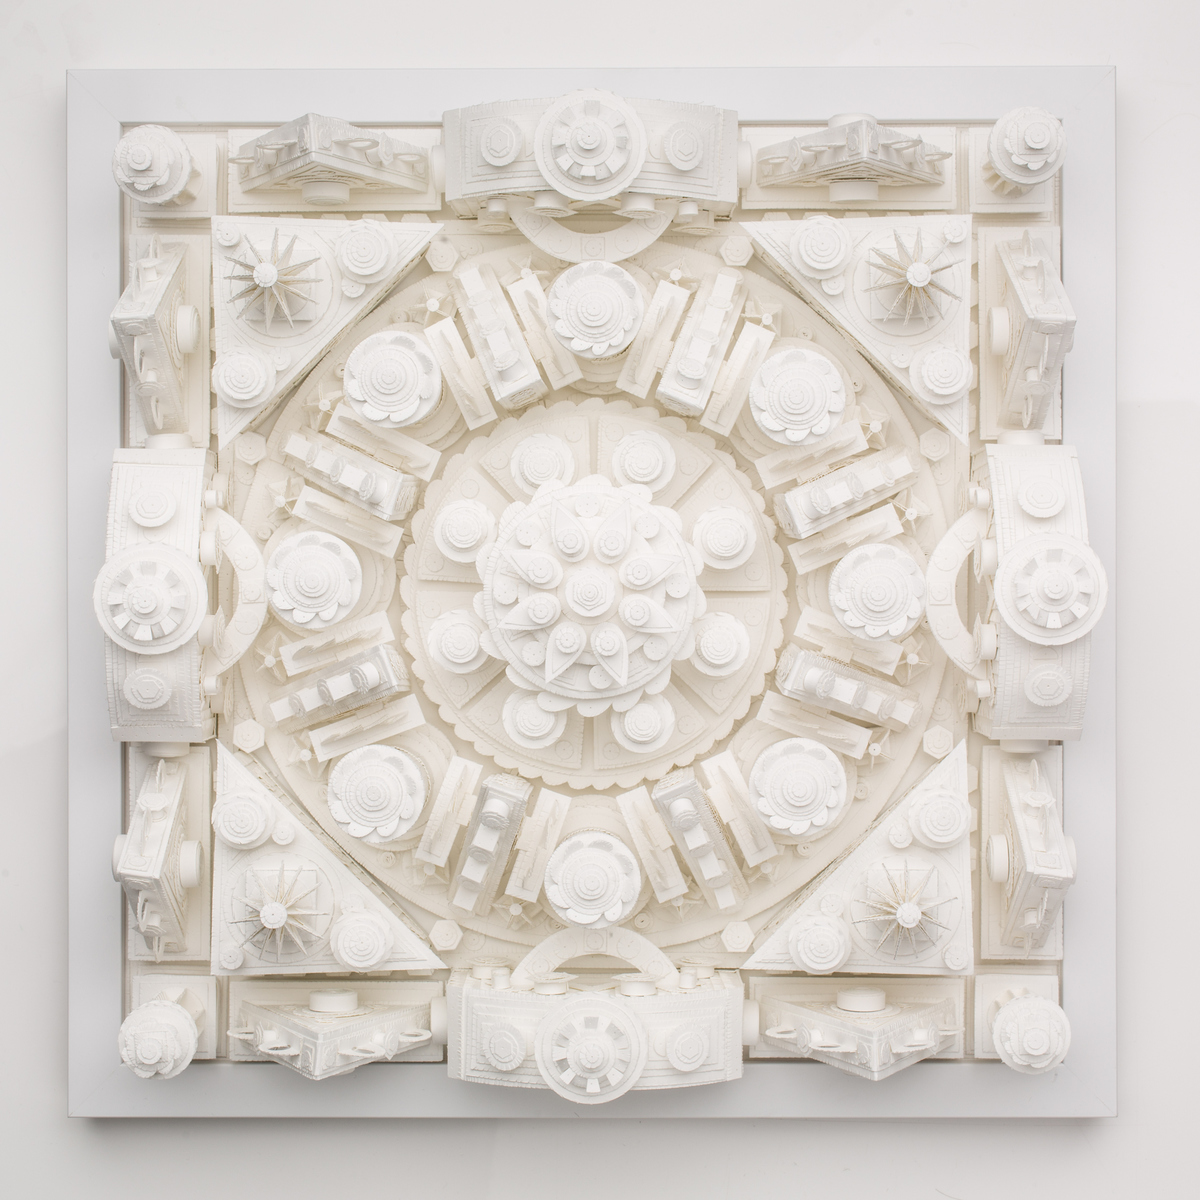 MICHAEL VELLIQUETTE Current Paper Sculpture Paper sculpture